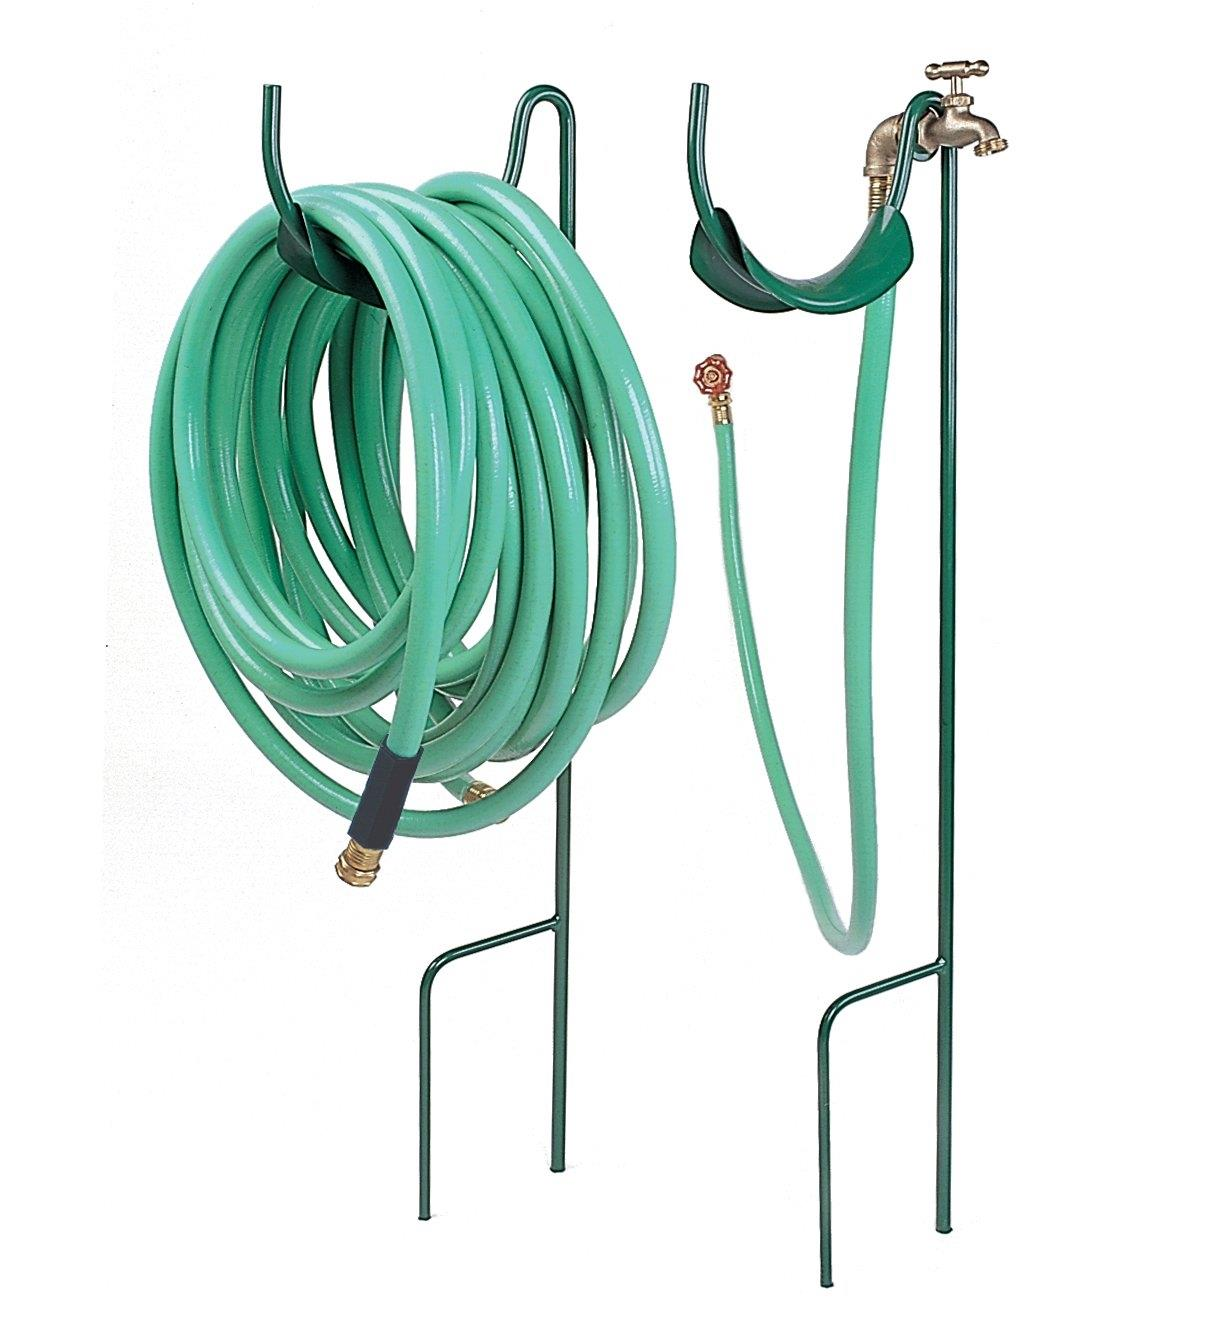 Two Lee Valley Hose Stands, one without a valve holding a 50' hose, and the other with a valve and optional 6' hose